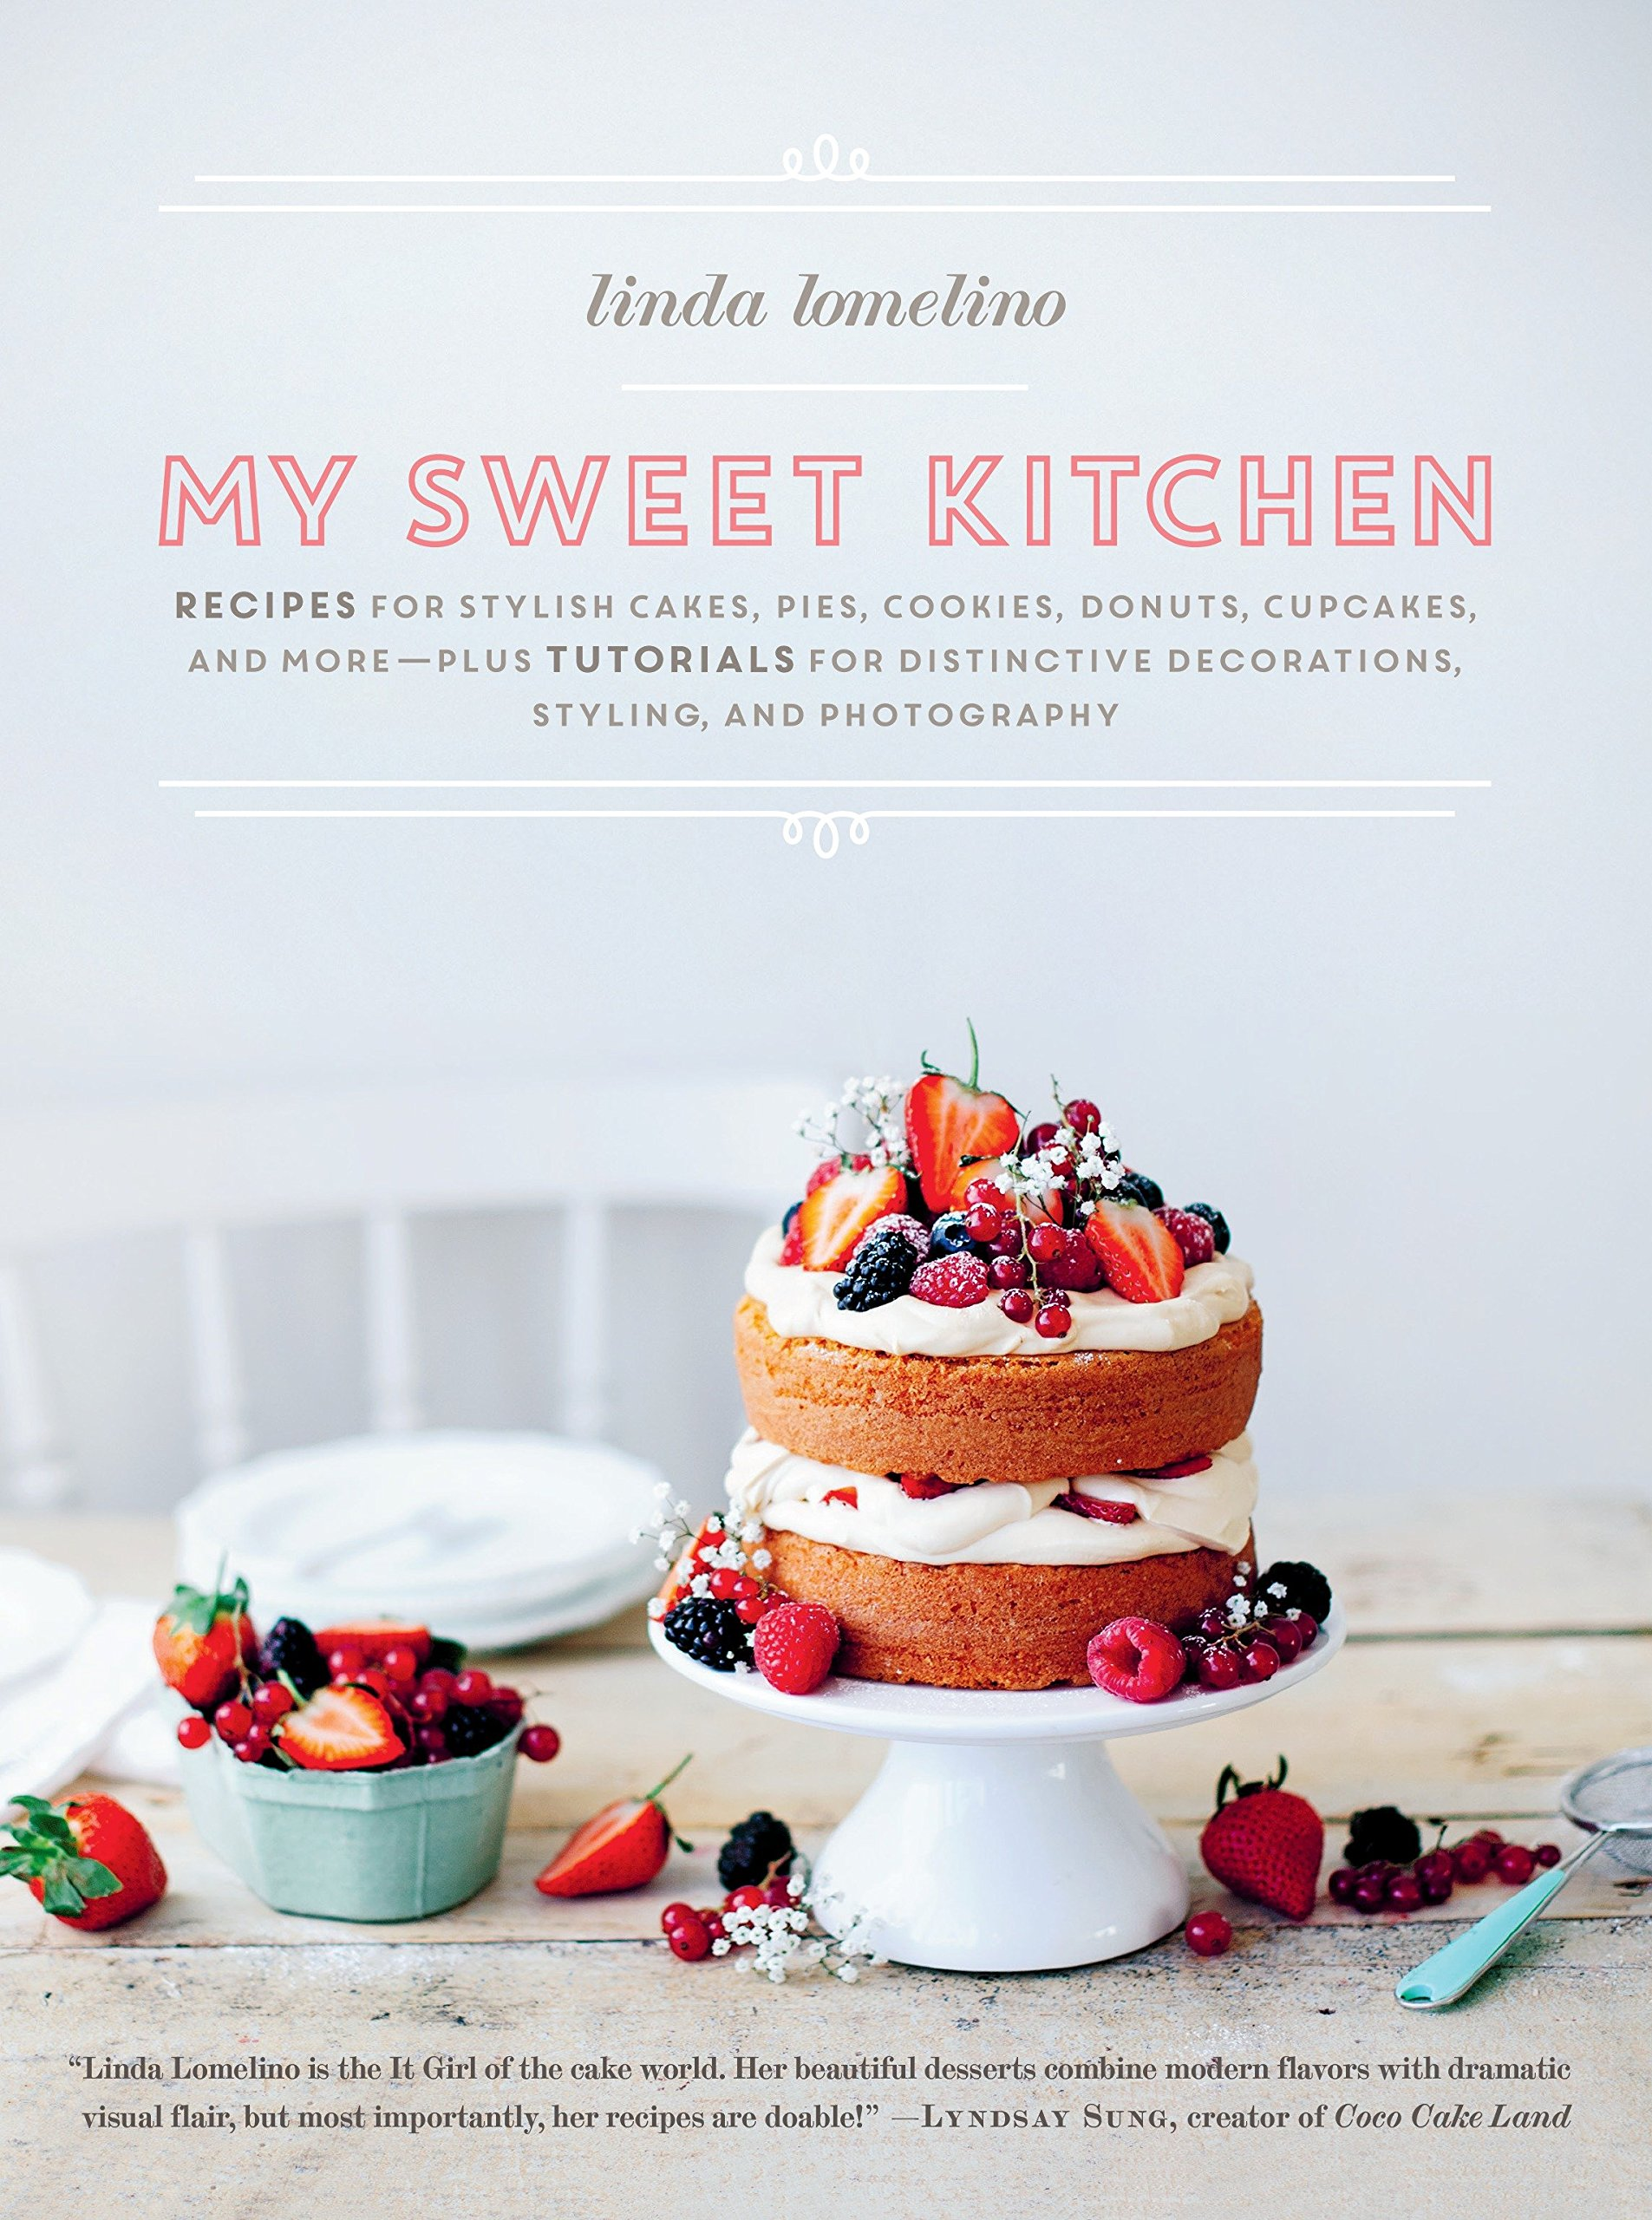 My Sweet Kitchen: Recipes for Stylish Cakes, Pies, Cookies, Donuts, Cupcakes, and More-plus tutorials for distinctive decoration, styling, and photography by Roost Books